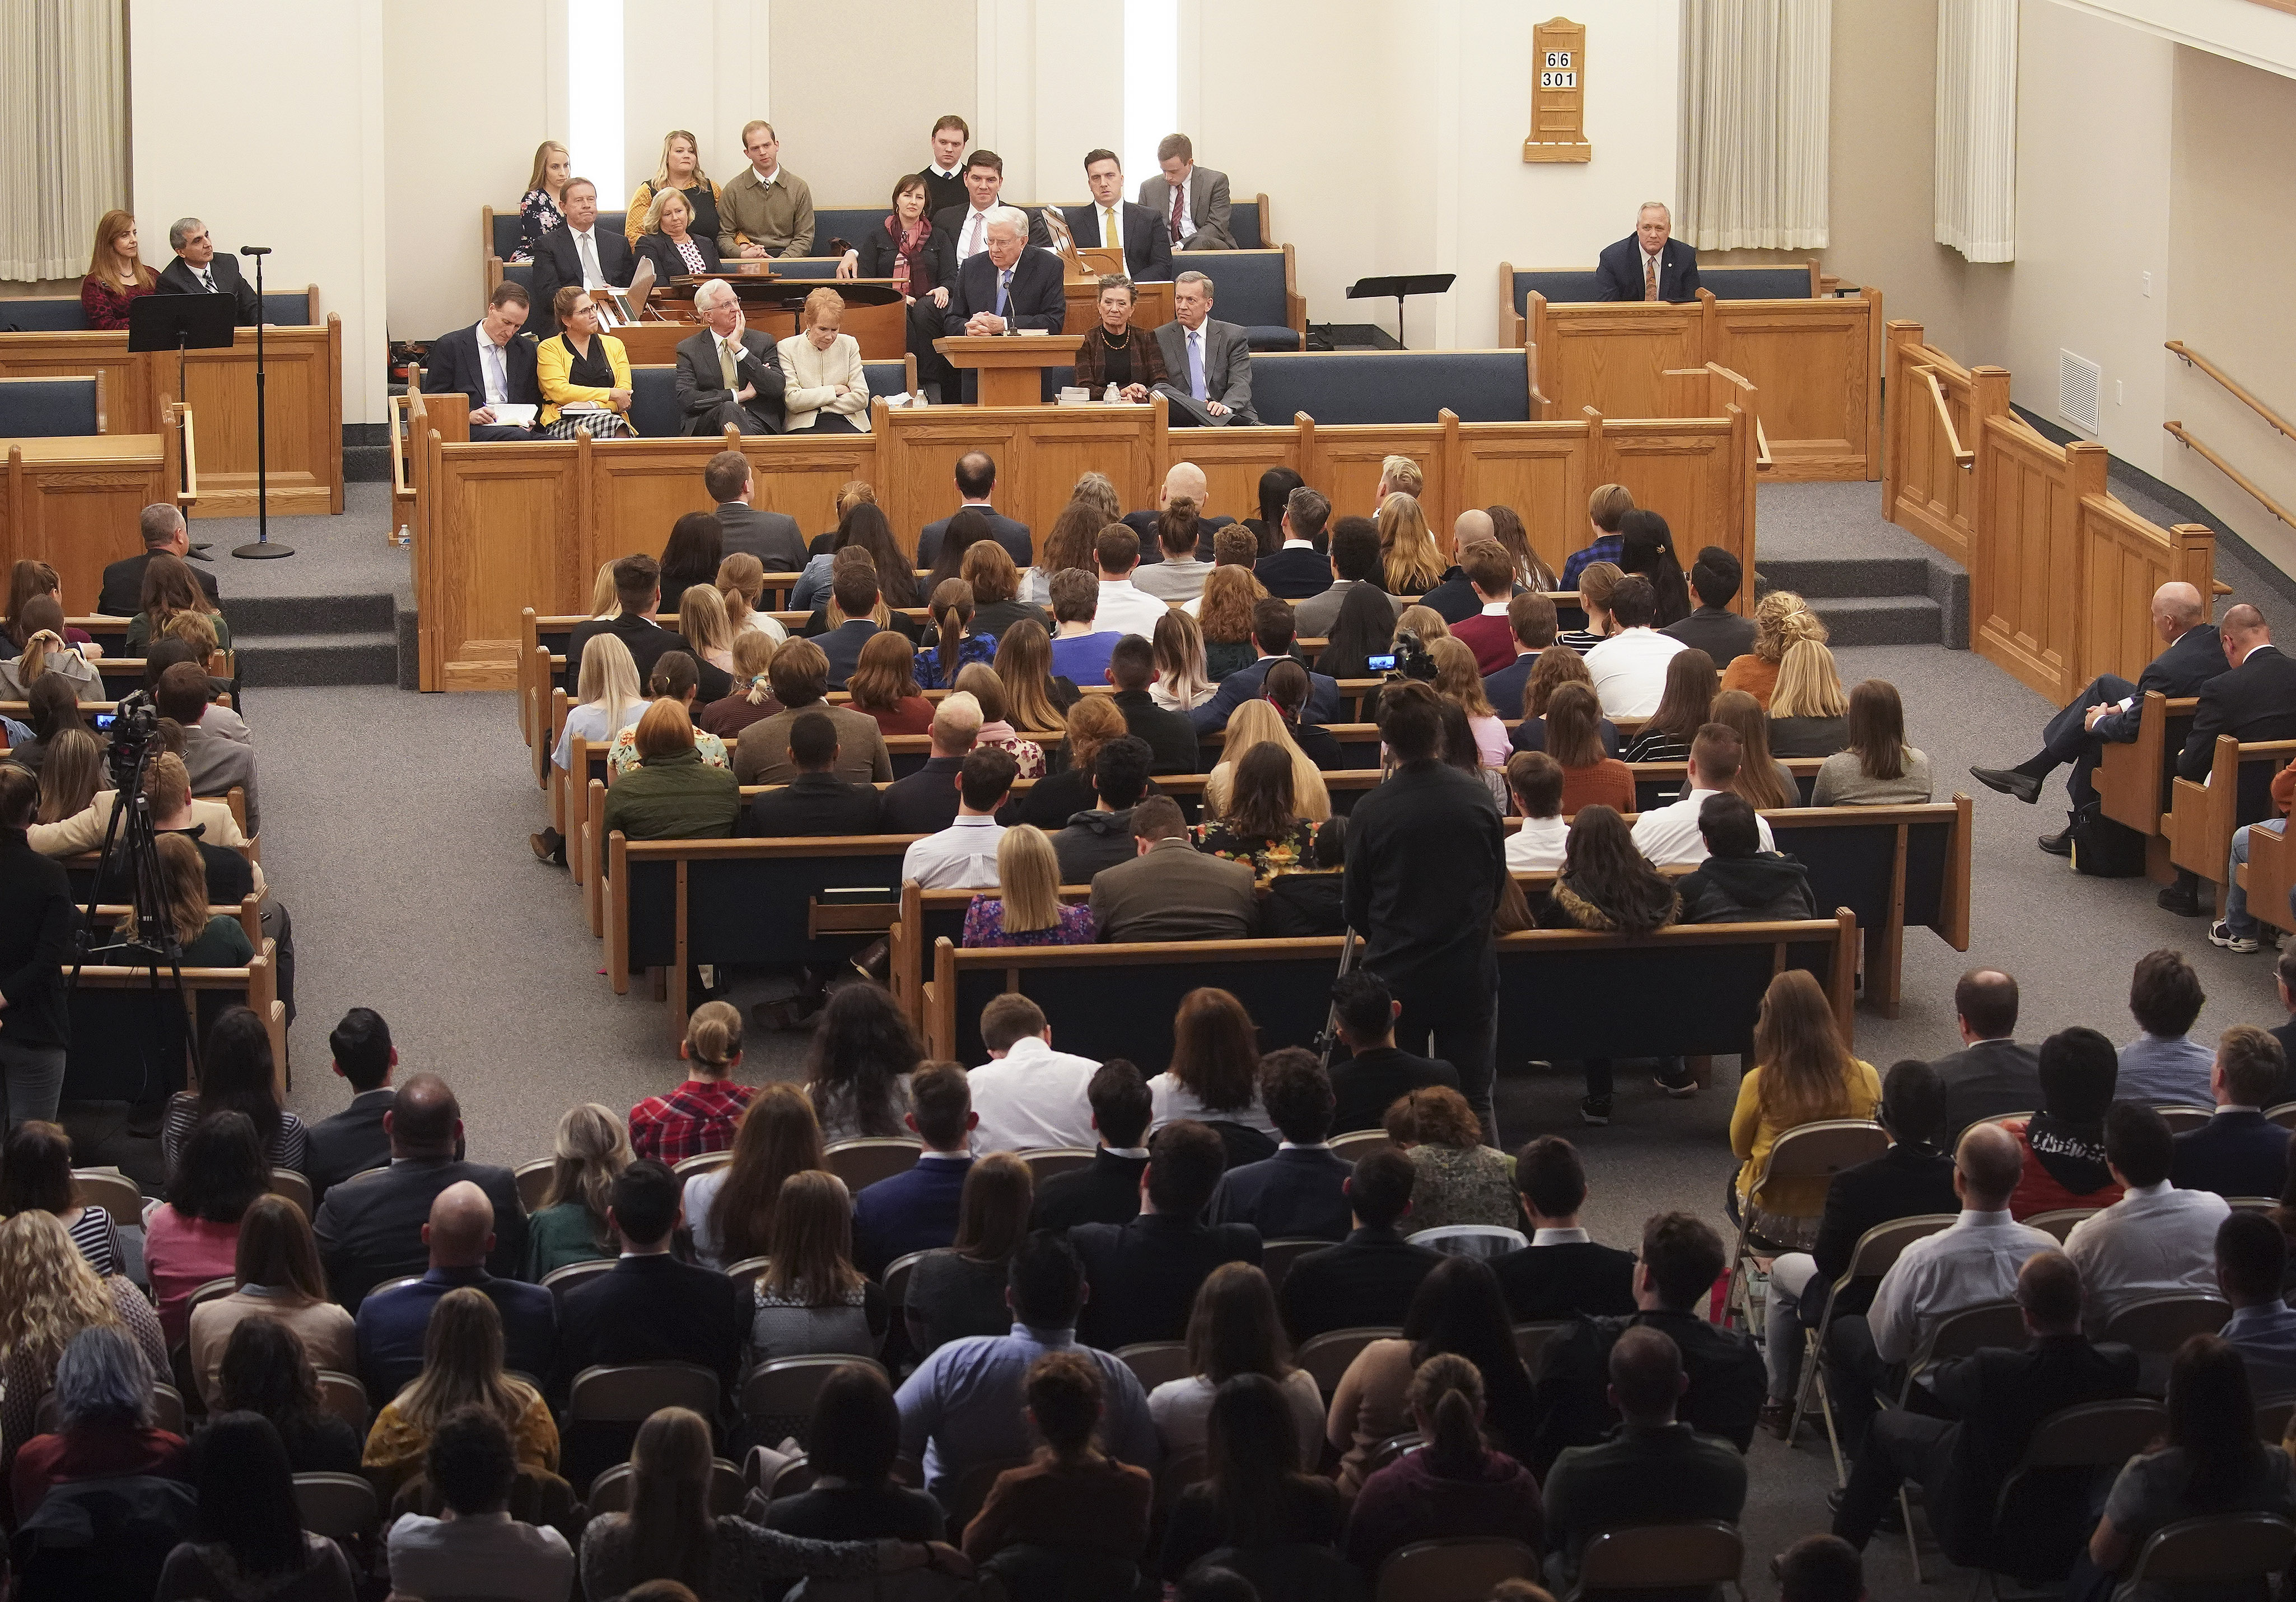 President M. Russell Ballard, acting president of the Quorum of the Twelve Apostles of The Church of Jesus Christ of Latter-day Saints, speaks in Boston on Saturday, Oct. 19, 2019.